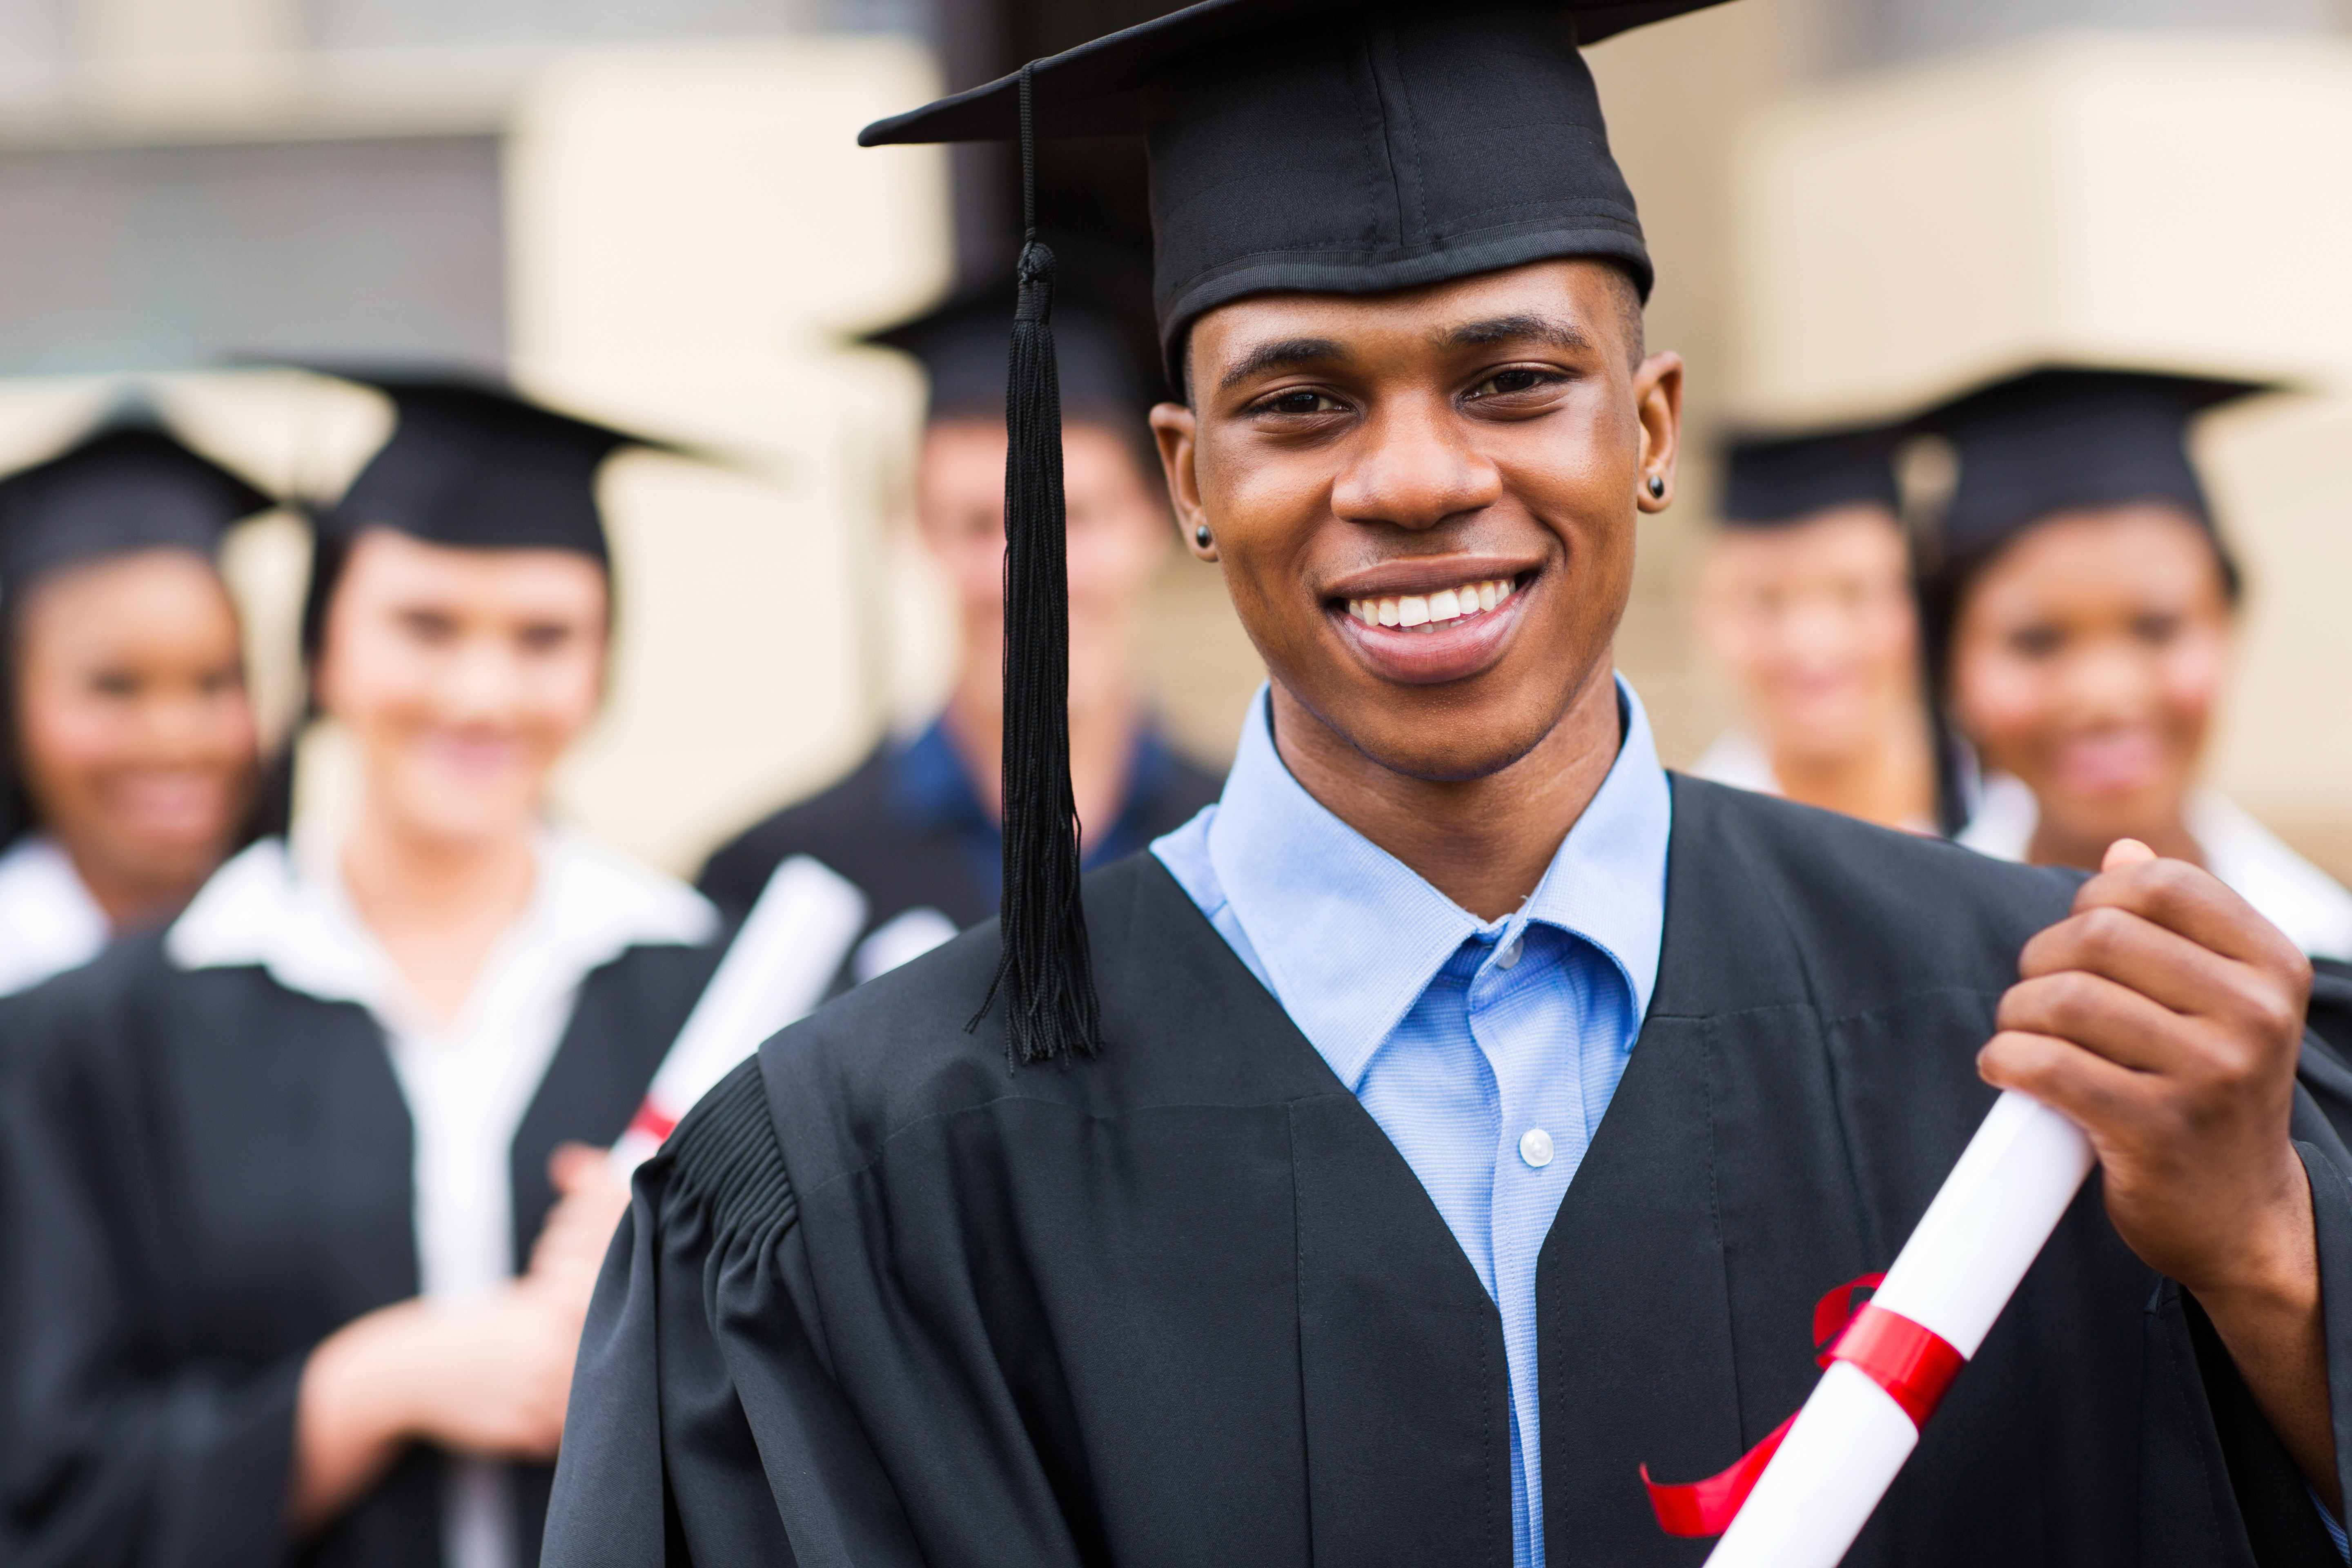 KnowBe4 to Offer $10,000 Black Americans in Cybersecurity Scholarship